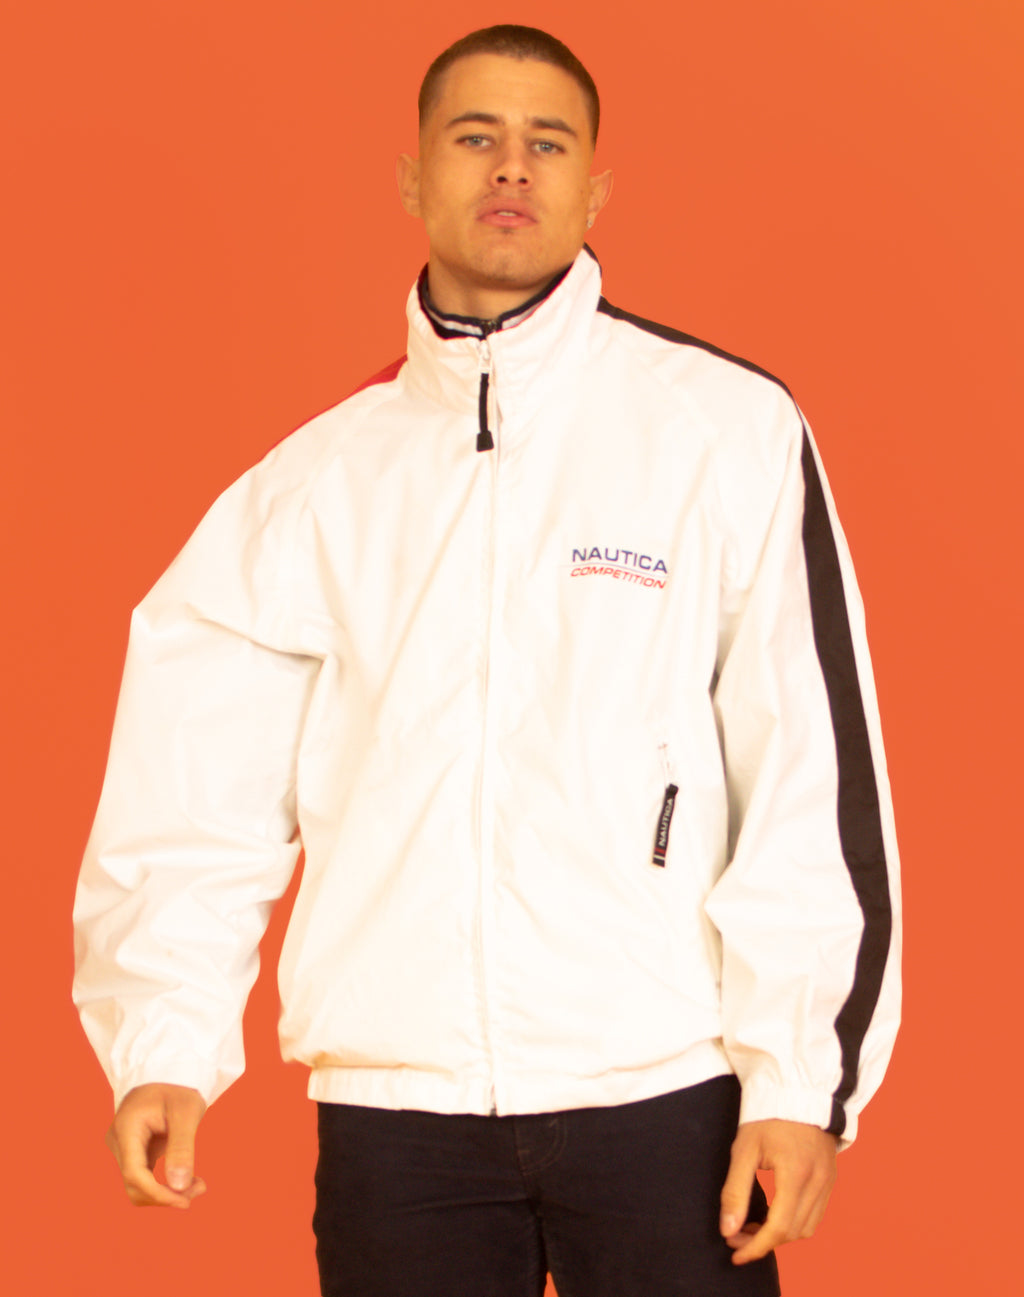 NAUTICA WHITE WATERPROOF JACKET